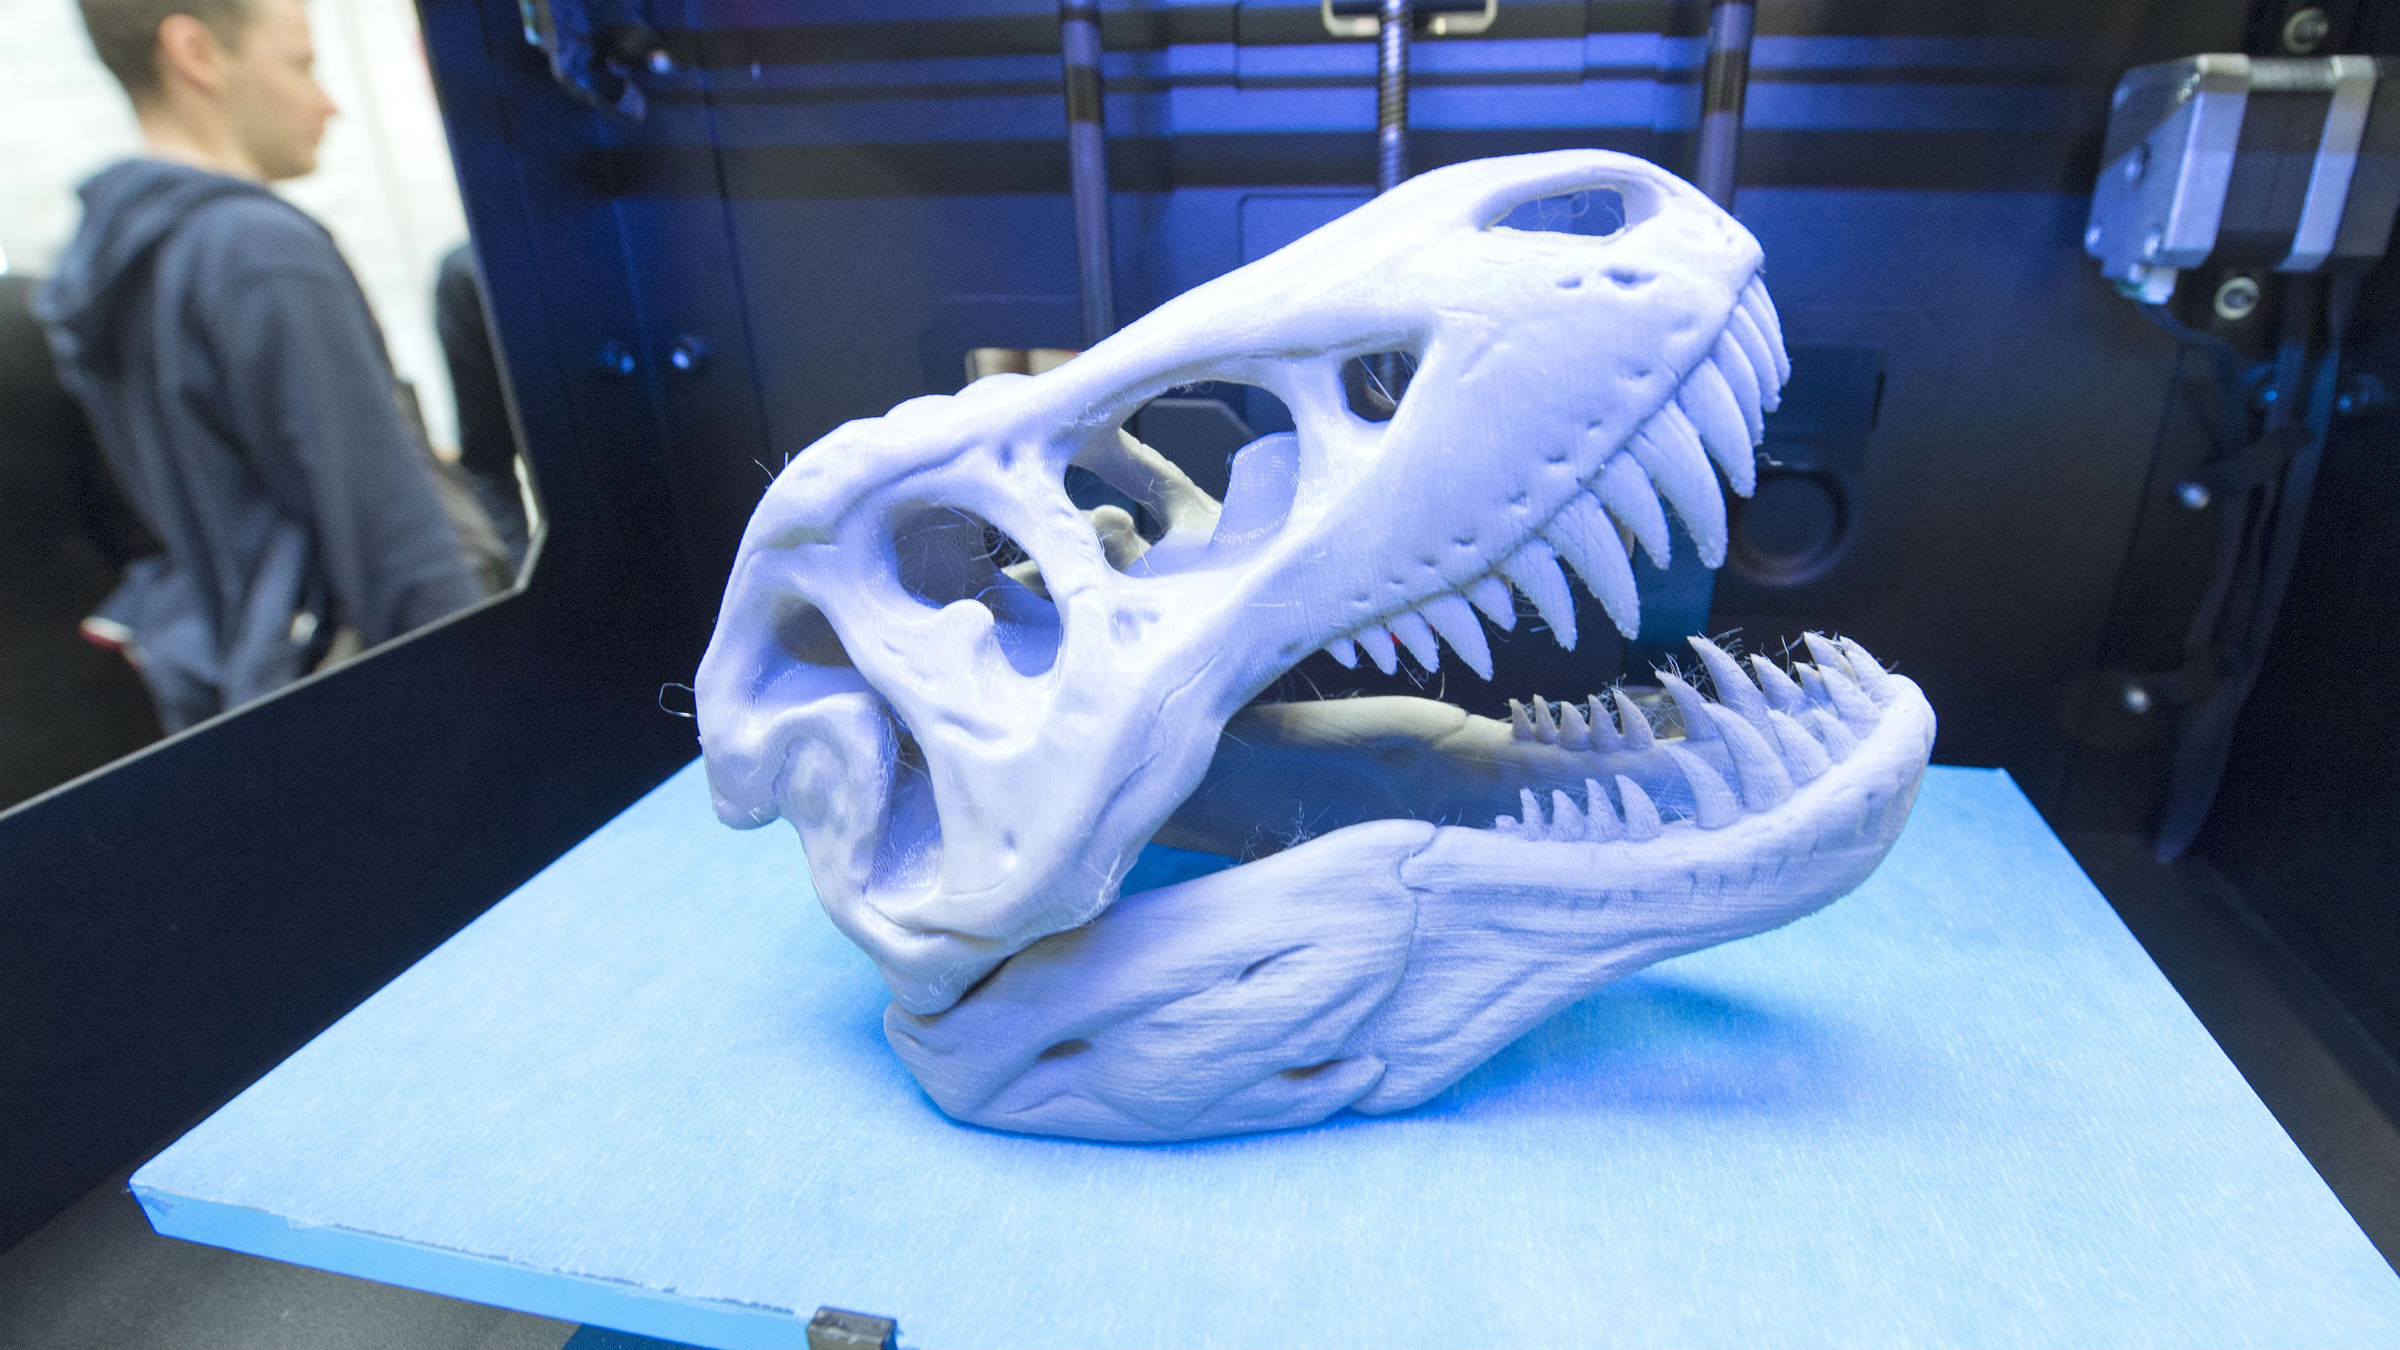 A 3D print of a dinosaur's head lies in a printer of the US company MakerBot of New York during the international fairs FabCon 3.D and Rapid.Tech in Erfurt, Germany, Thursday, May 15, 2014. 130 exhibitors from all over the world present the entire world of 3D printing. The trade fairs are accompanied by specialist programs featuring 80 scientists, practitioners and trend analysts from ten countries, who will explain the latest findings, trends and applications for additive processes in industry and for 3D printing in the private sector to newcomers, experts and consumers alike.